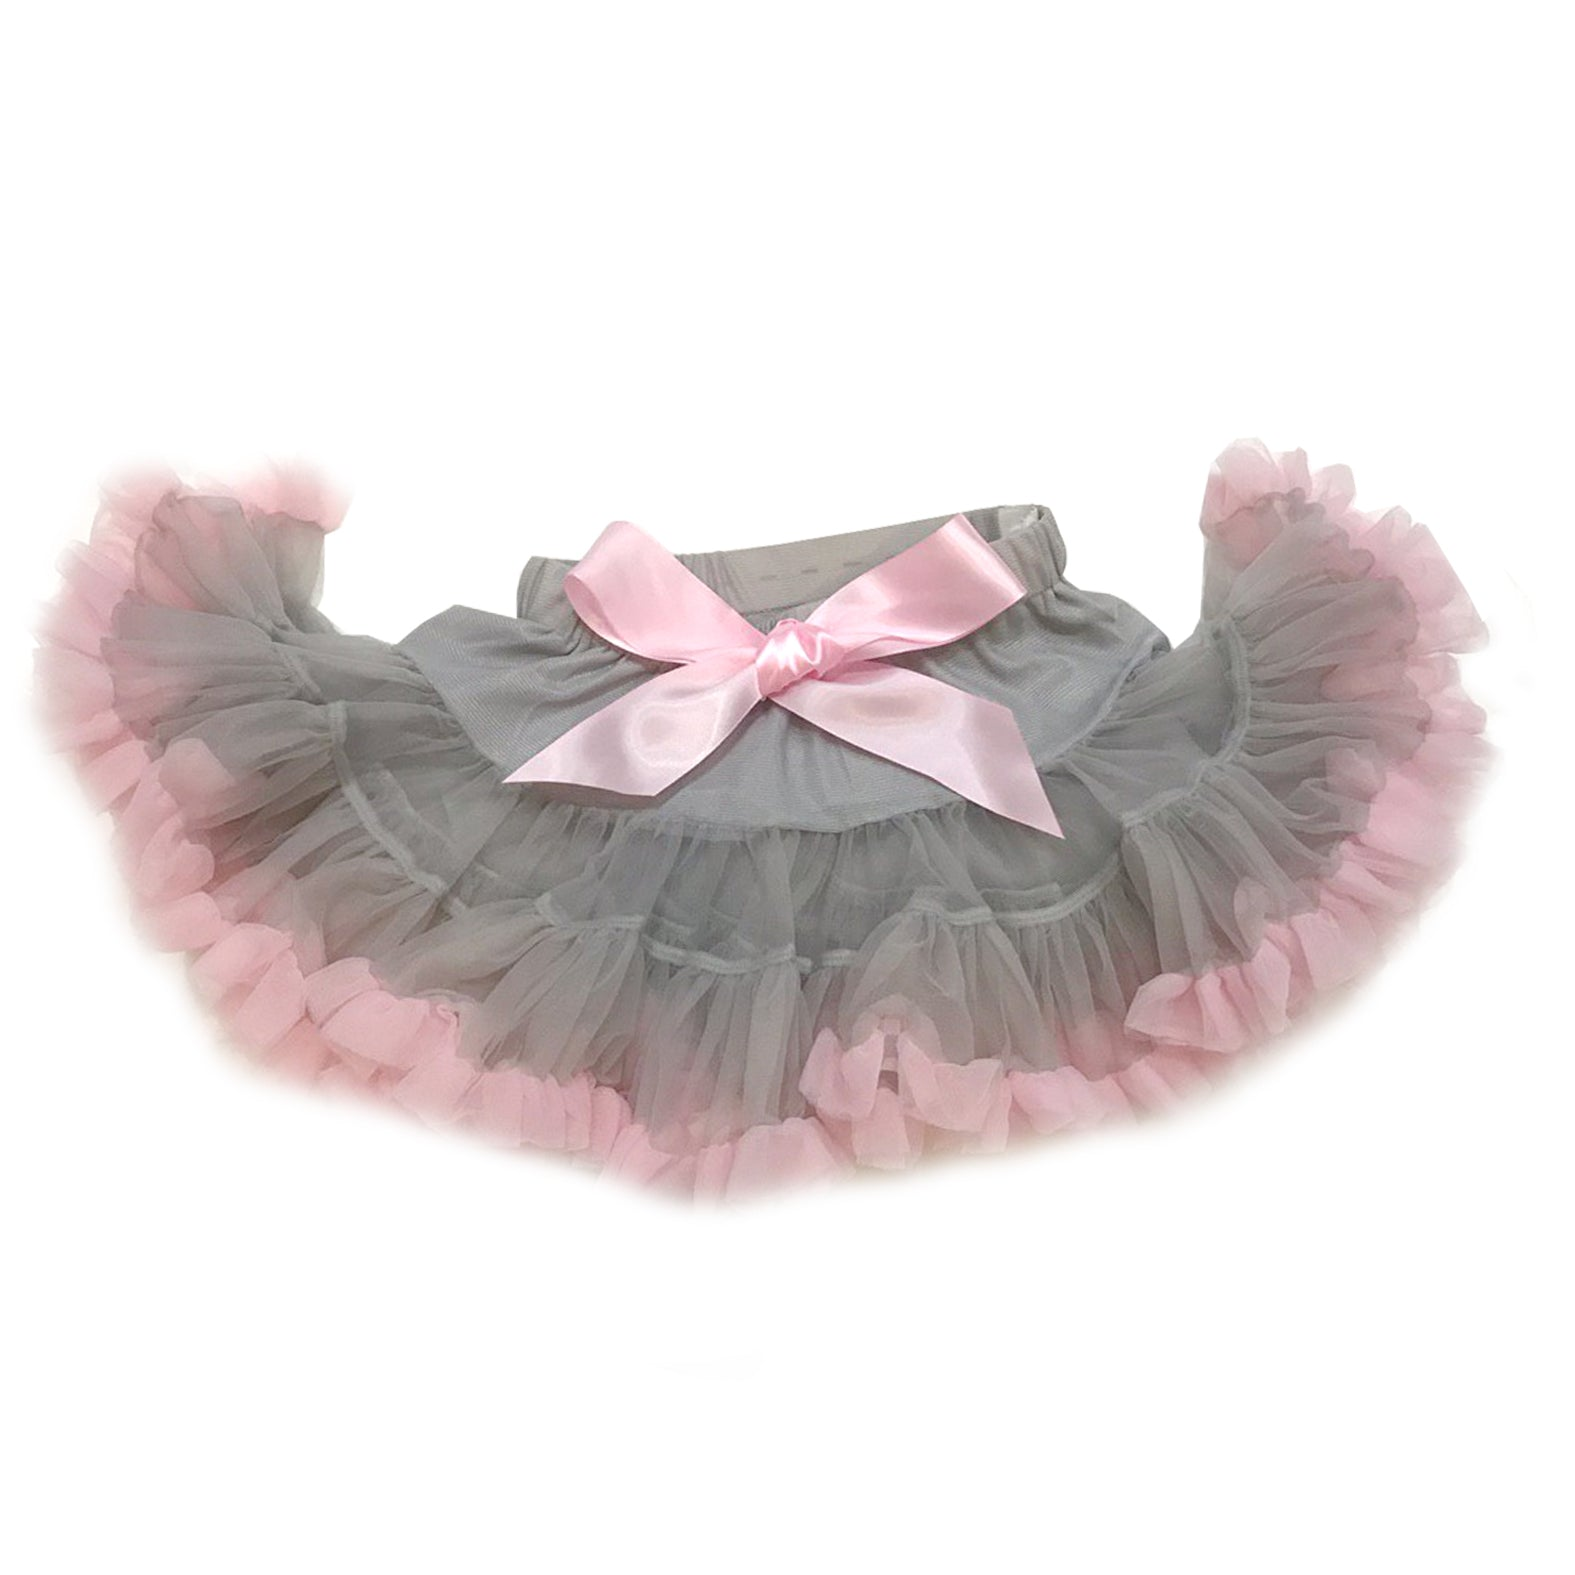 Dusty Grey with Pink Tulle Skirt